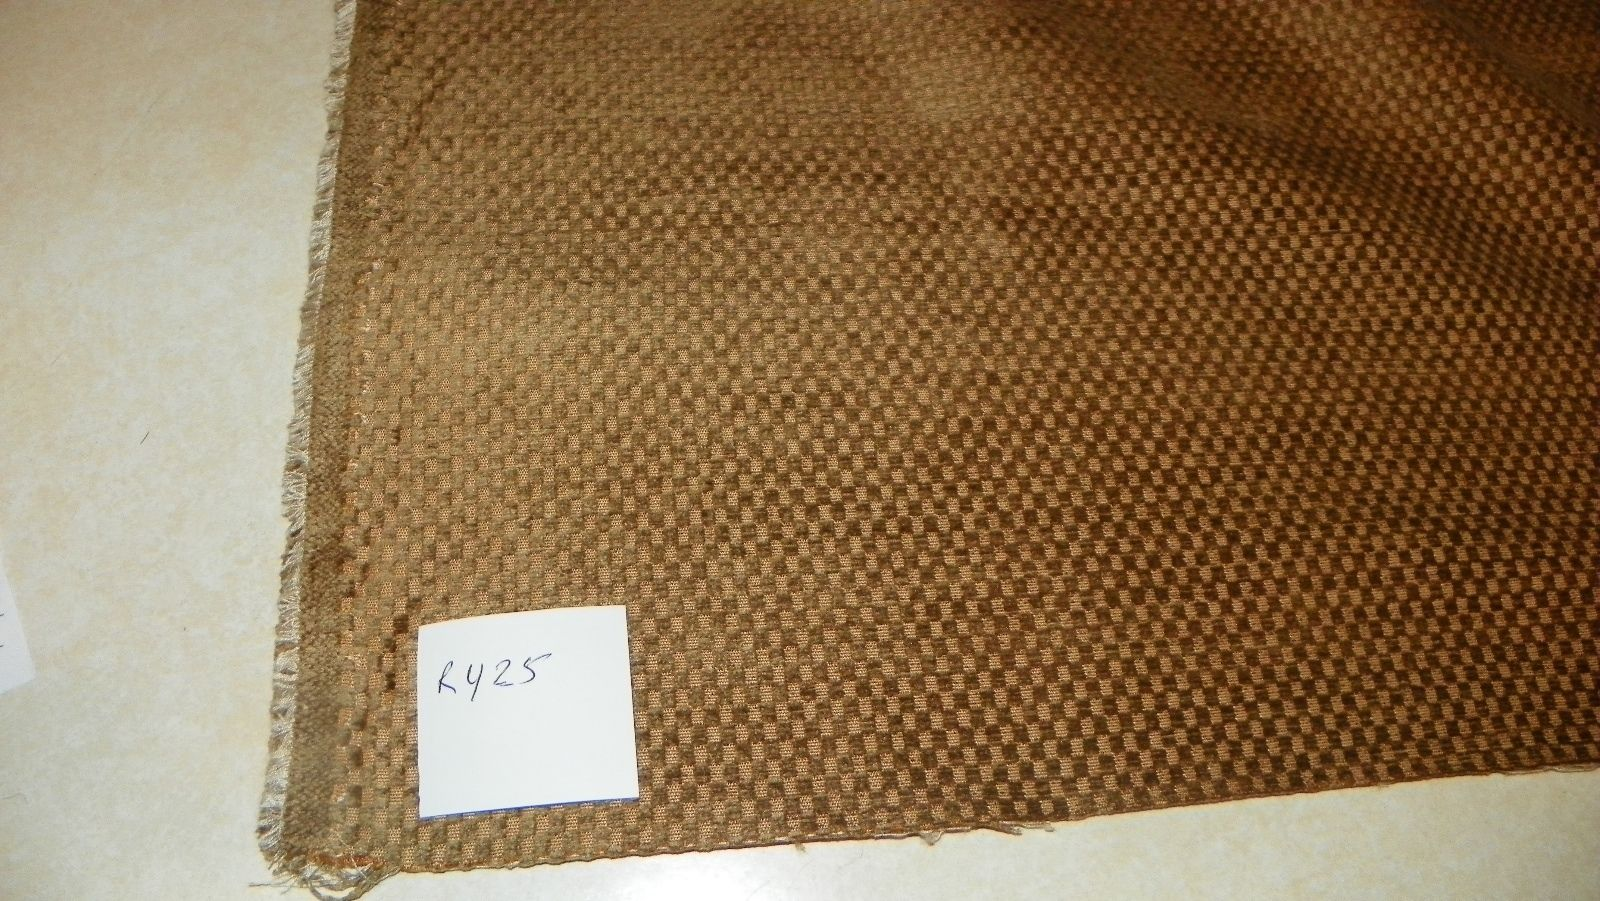 Gold Hobnail Upholstery Fabric 1 Yard  R425